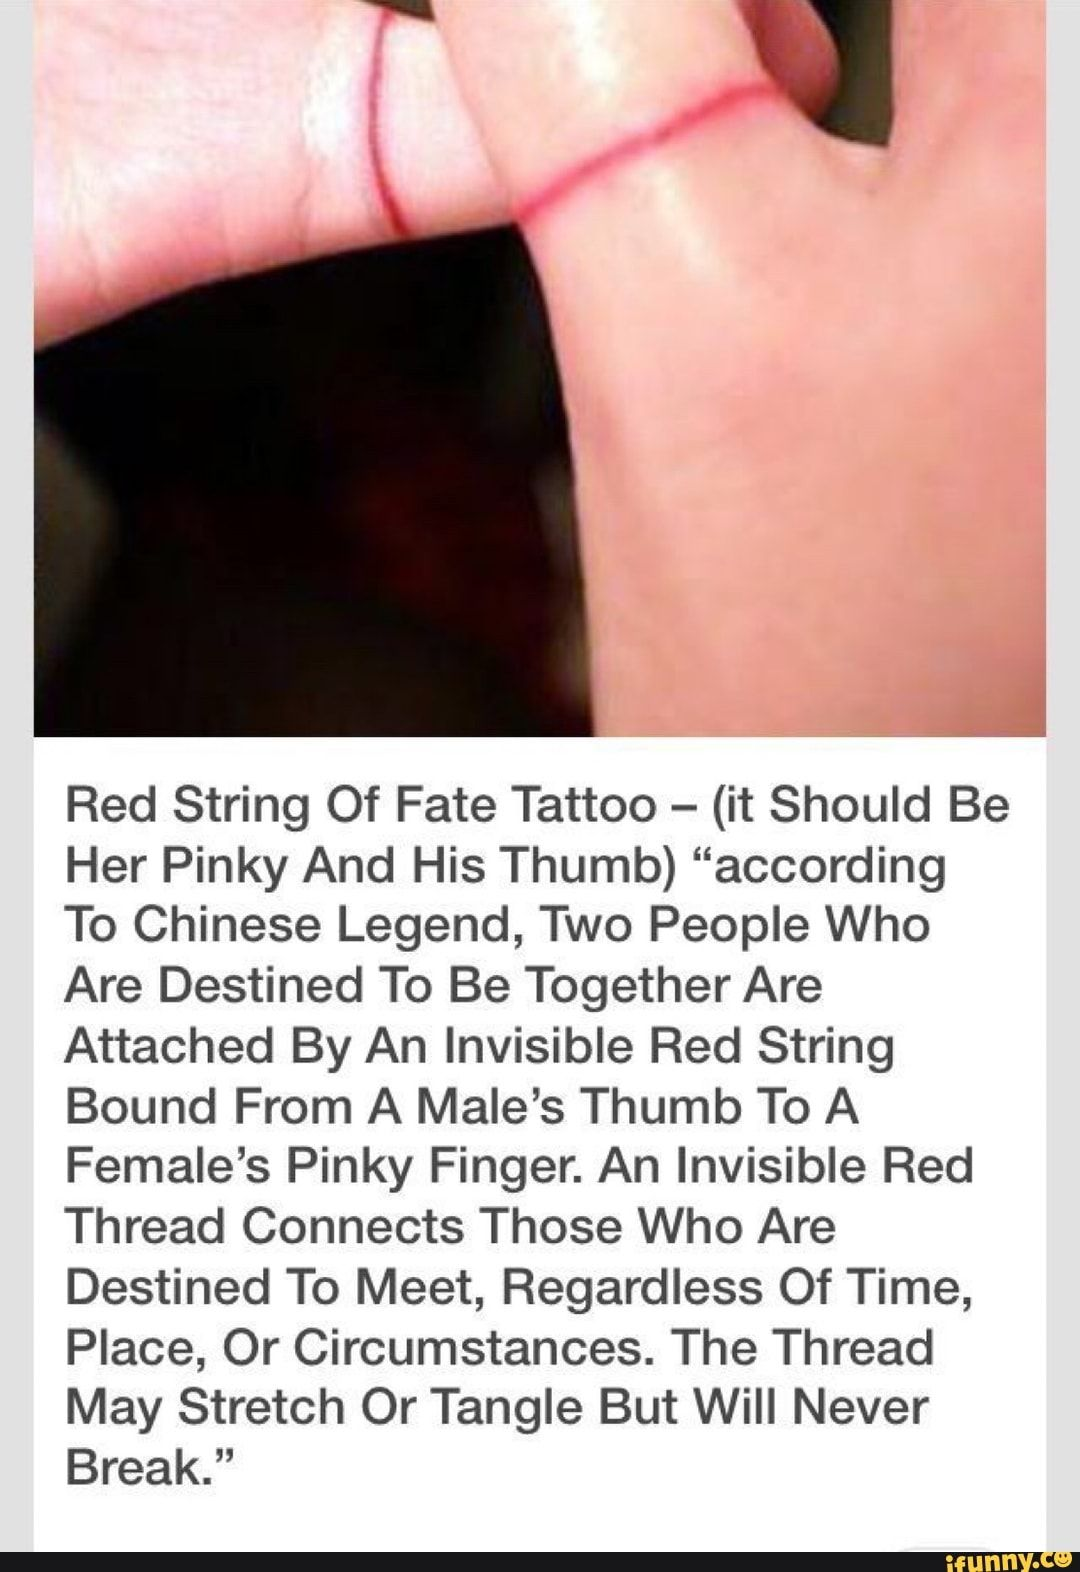 """Red String Of Fate Tattoo - (it Should Be Her Pinky And His Thumb) """"according To Chinese Legend, Two People Who Are Destined To Be Together Are Attached By An Invisible Red String Bound From A Male's Thumb To A Female's Pinky Finger. An Invisible Red Thread Connects Those Who Are Destined To Meet, Regardless Of Time, Place, Or Circumstances. The Thread May Stretch Or Tangle But Will Never Break."""" - )"""